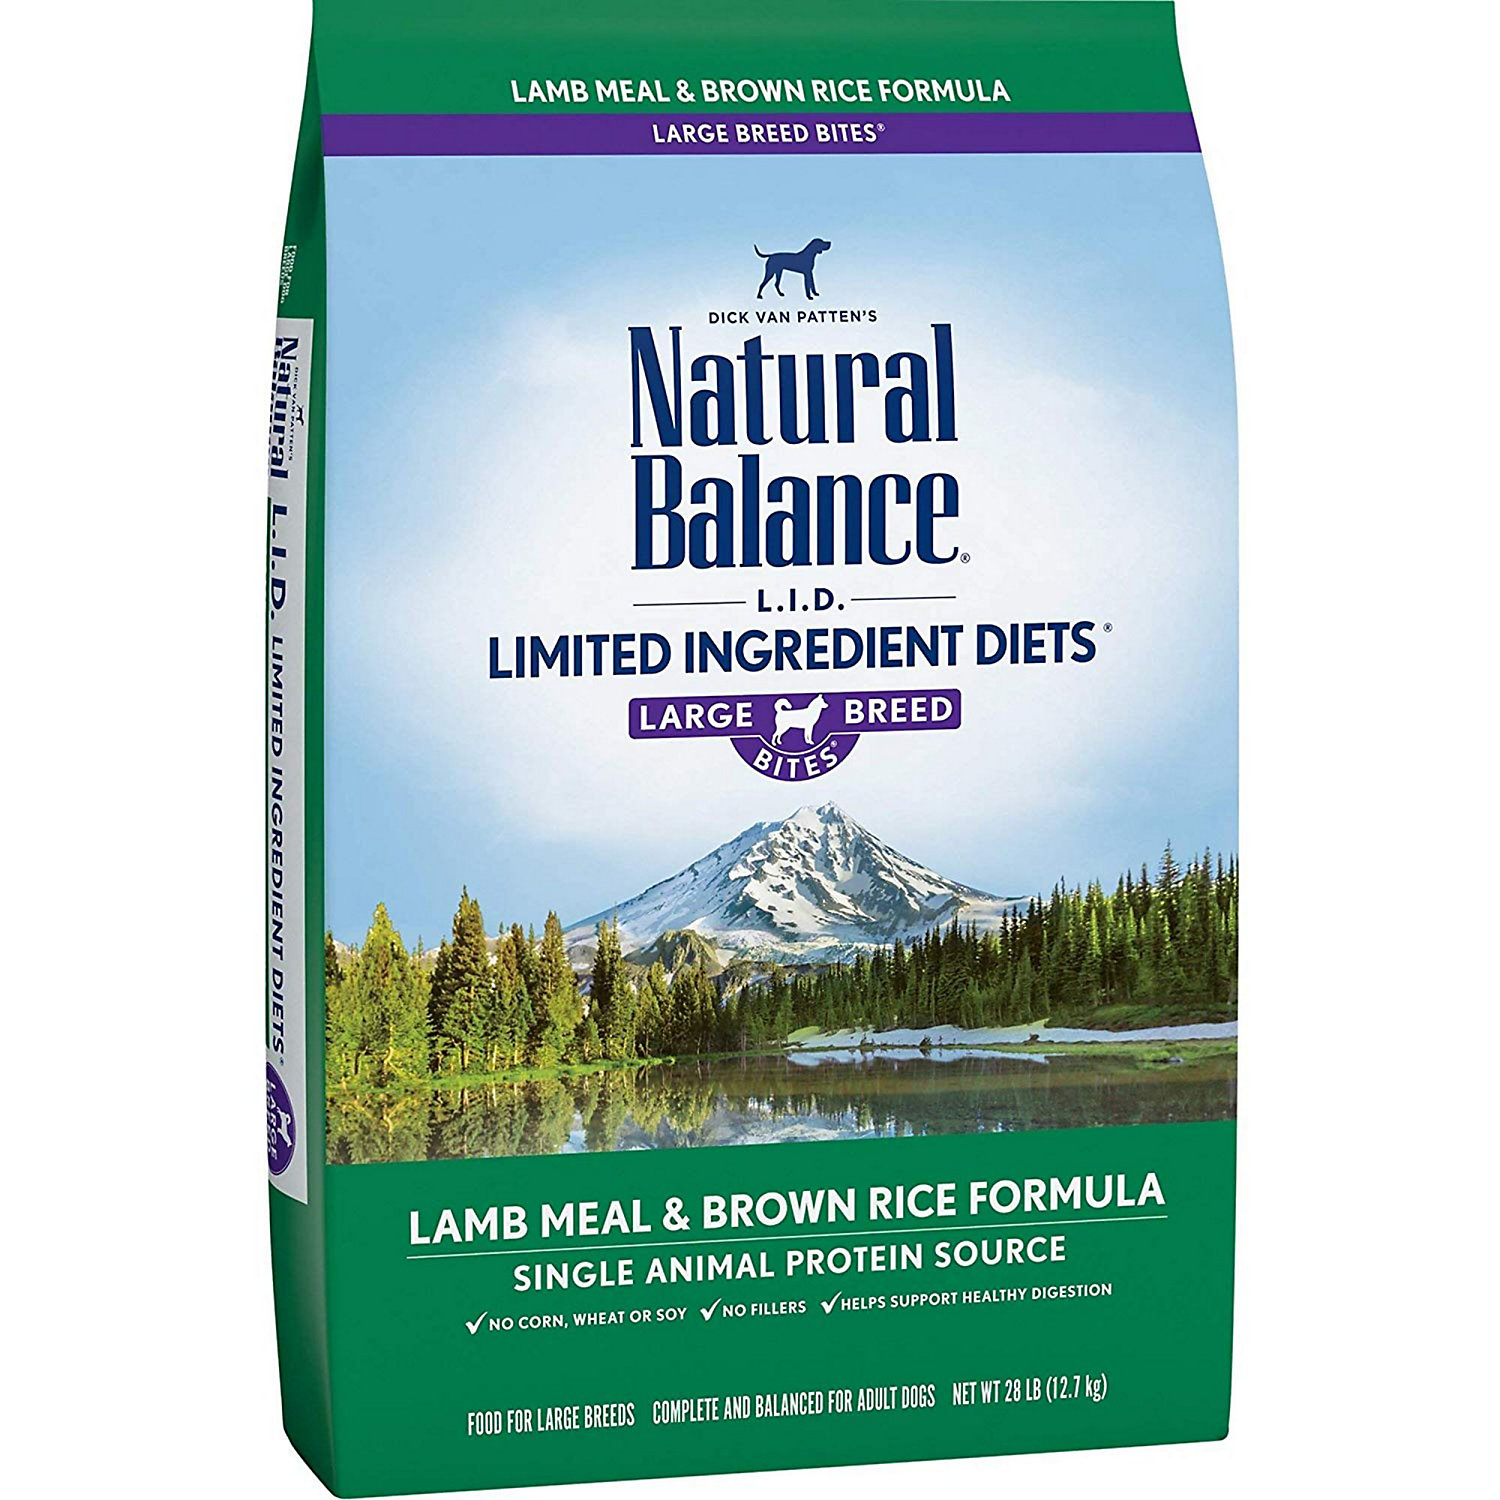 Natural Balance L.i.d. Limited Ingredient Diets Lamb Meal Brown Rice Large Breed Dog Food